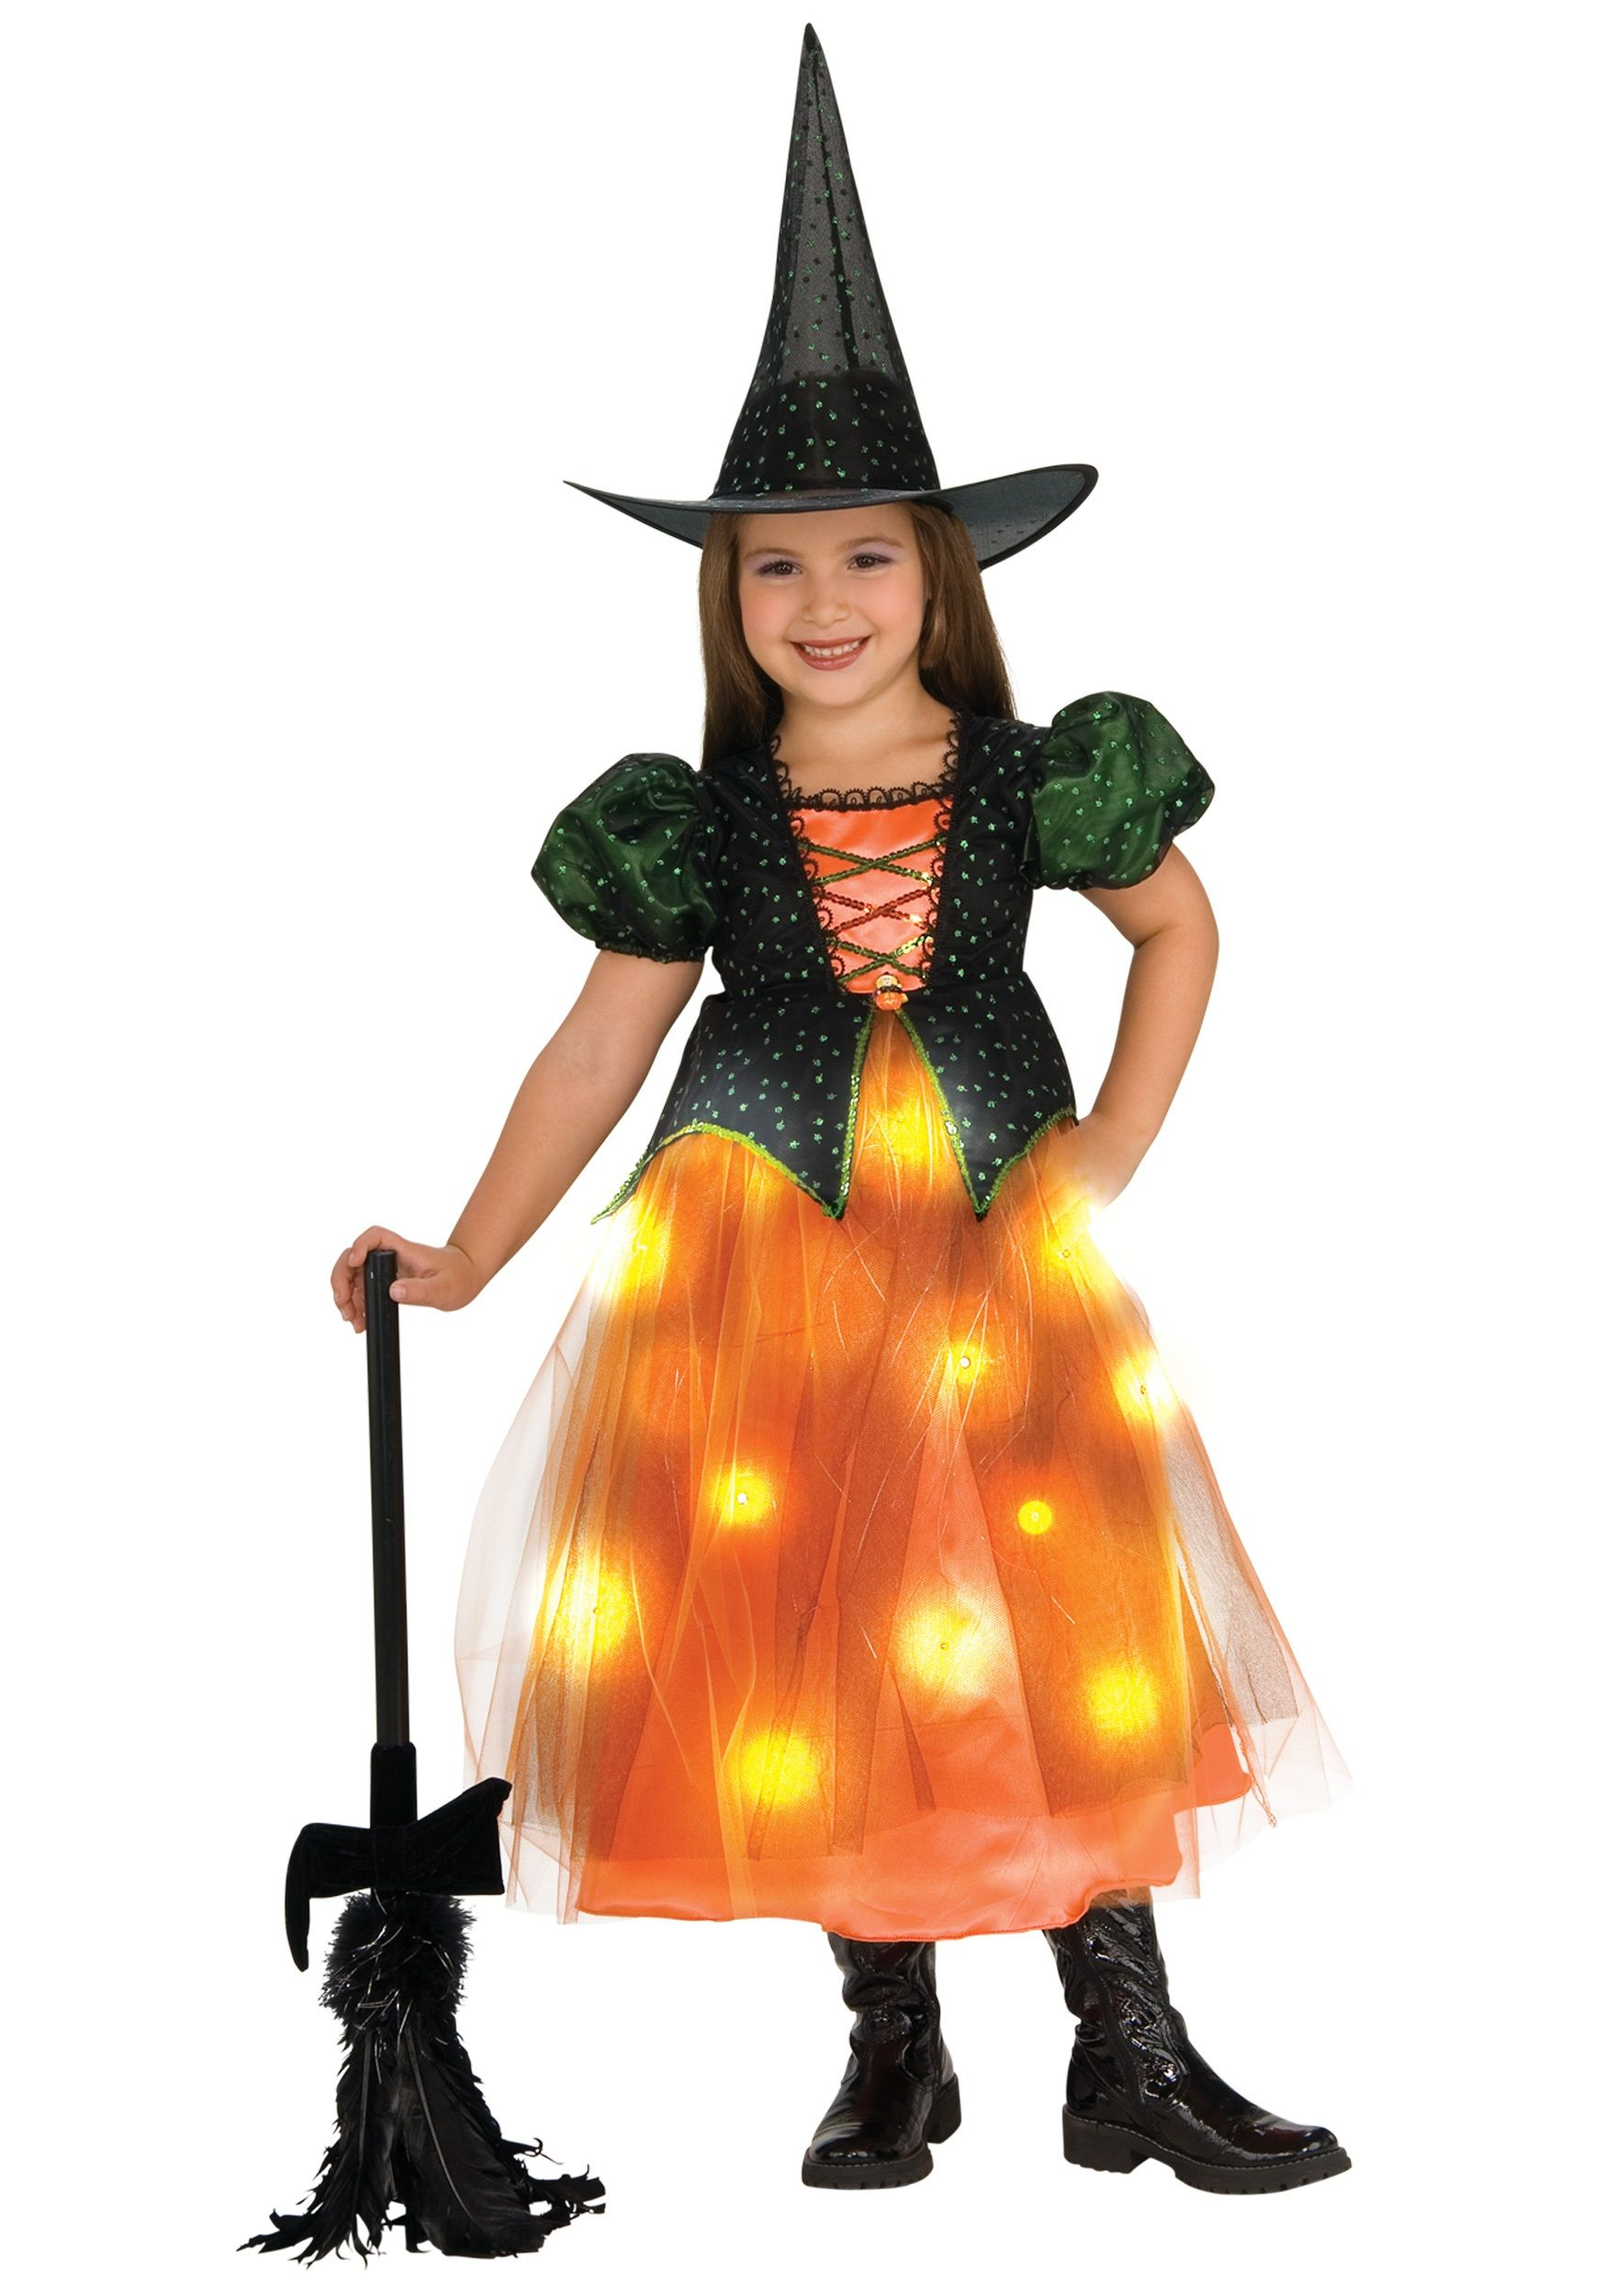 kid holloween costumes that light up | home halloween costumes